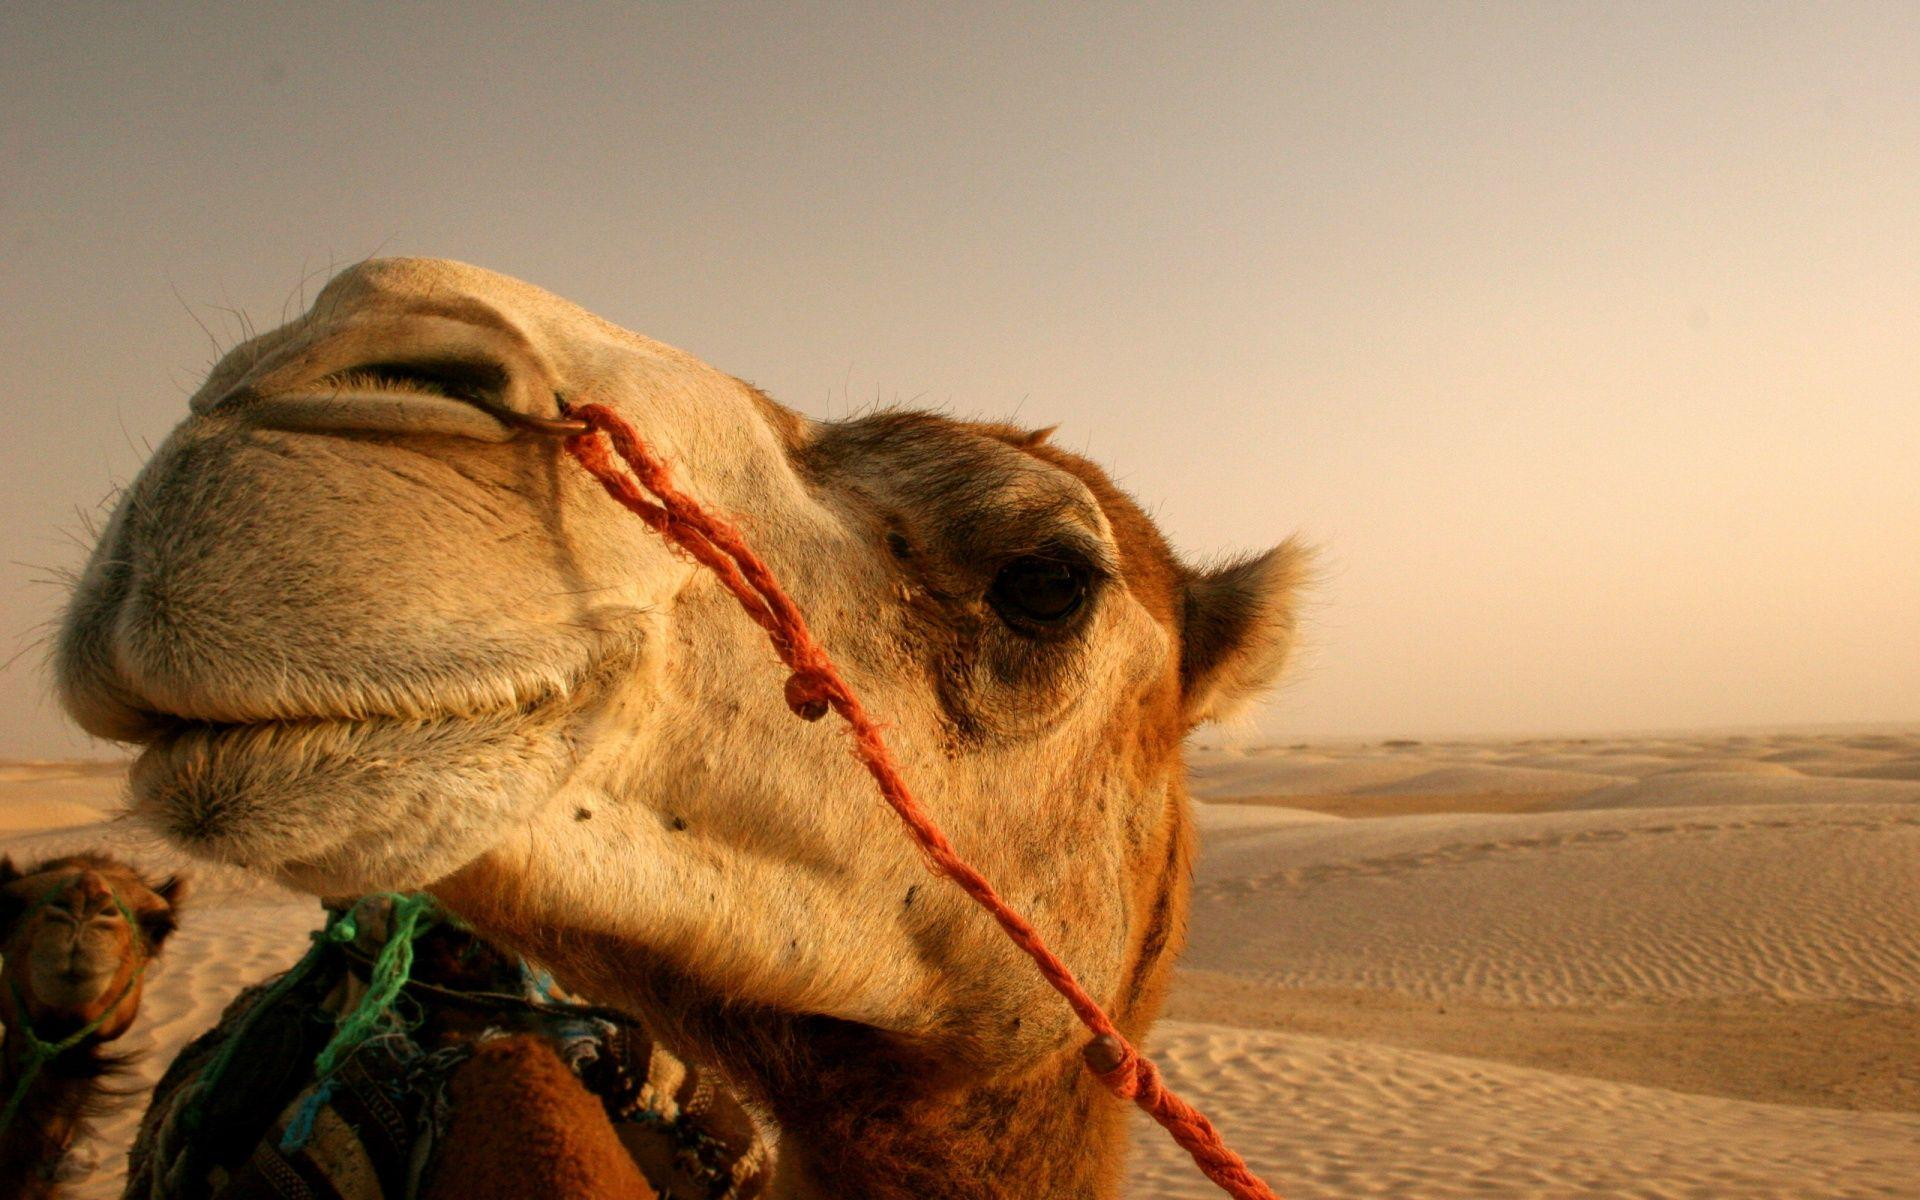 Camel Wallpapers HD Full HD Pictures 1920×1200 Camel Pictures